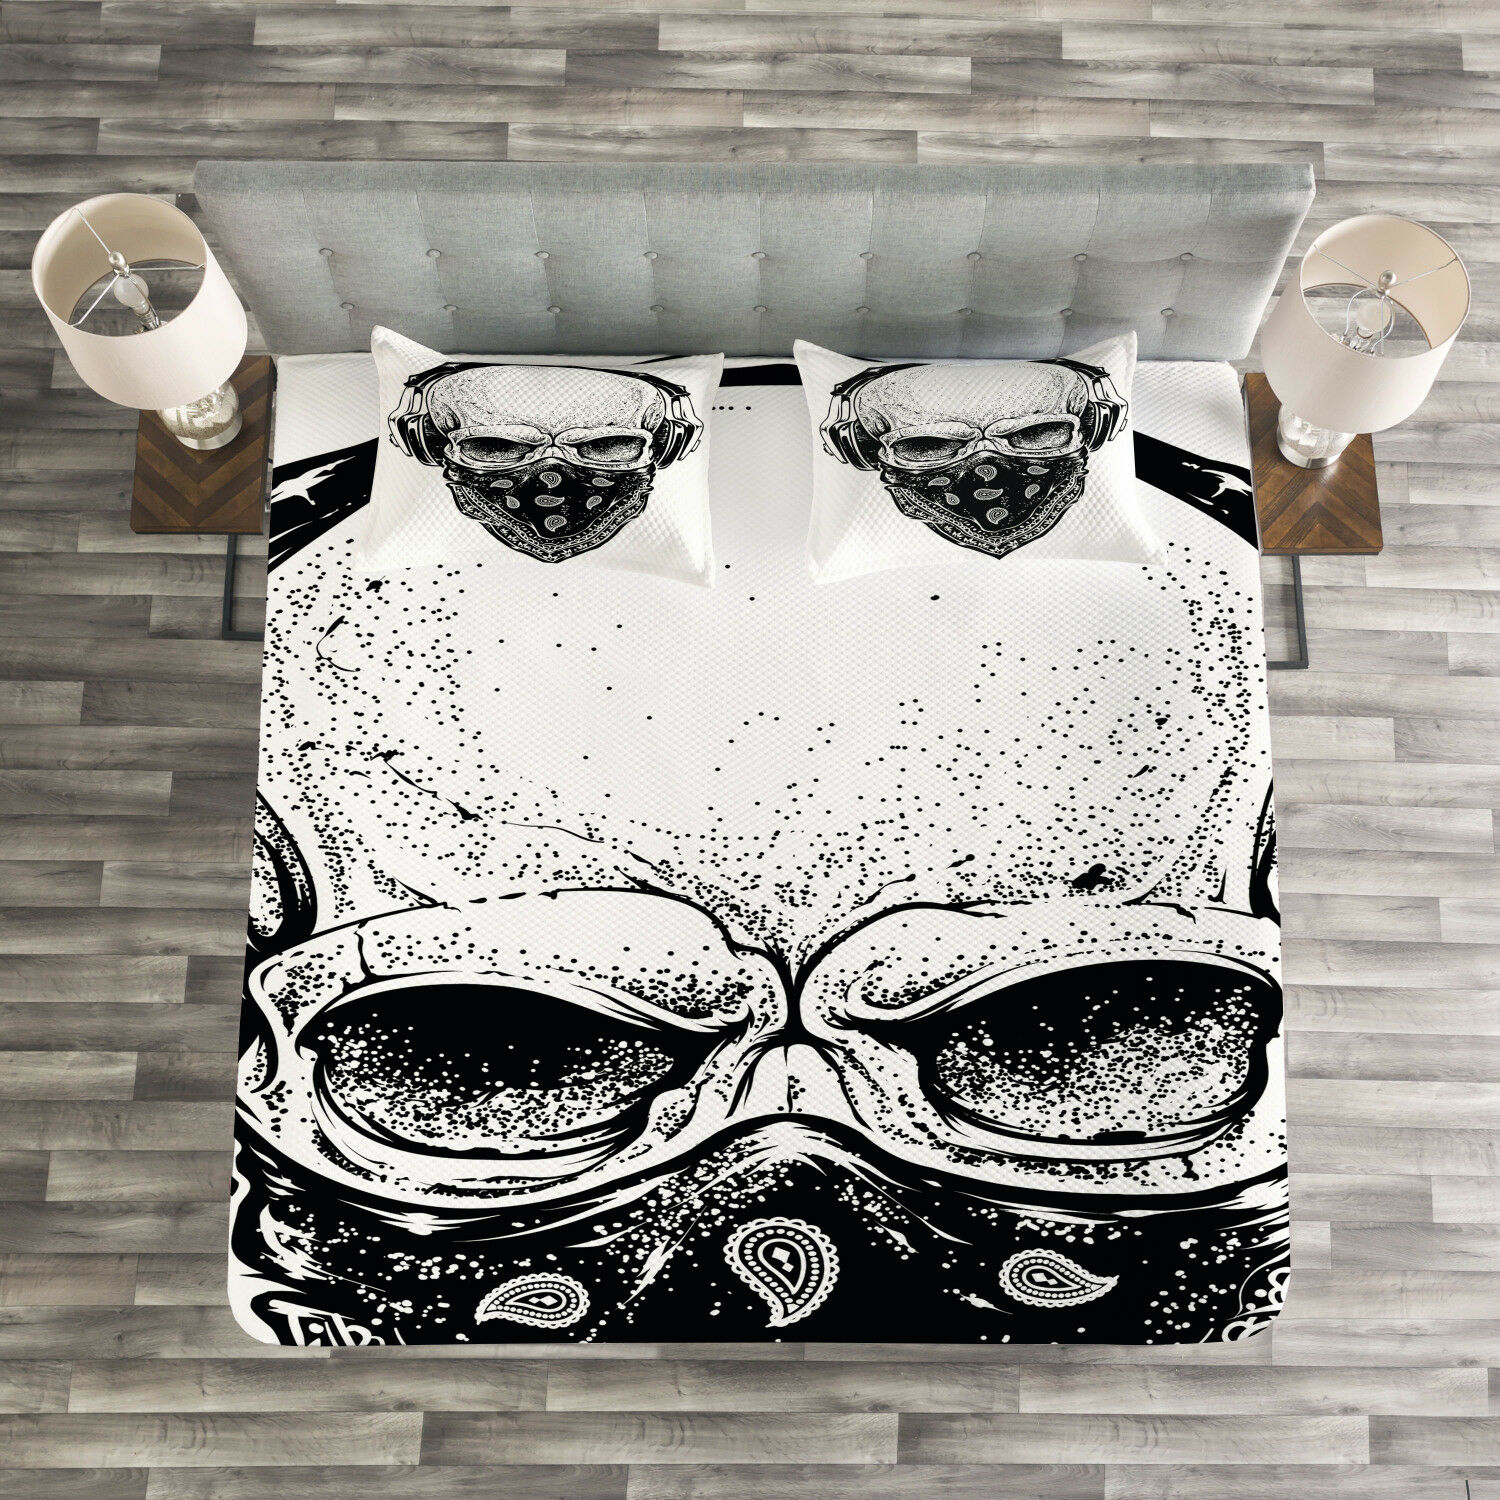 Grunge Quilted Bedspread & Pillow Shams Set, Gothic Skull Headphones Print